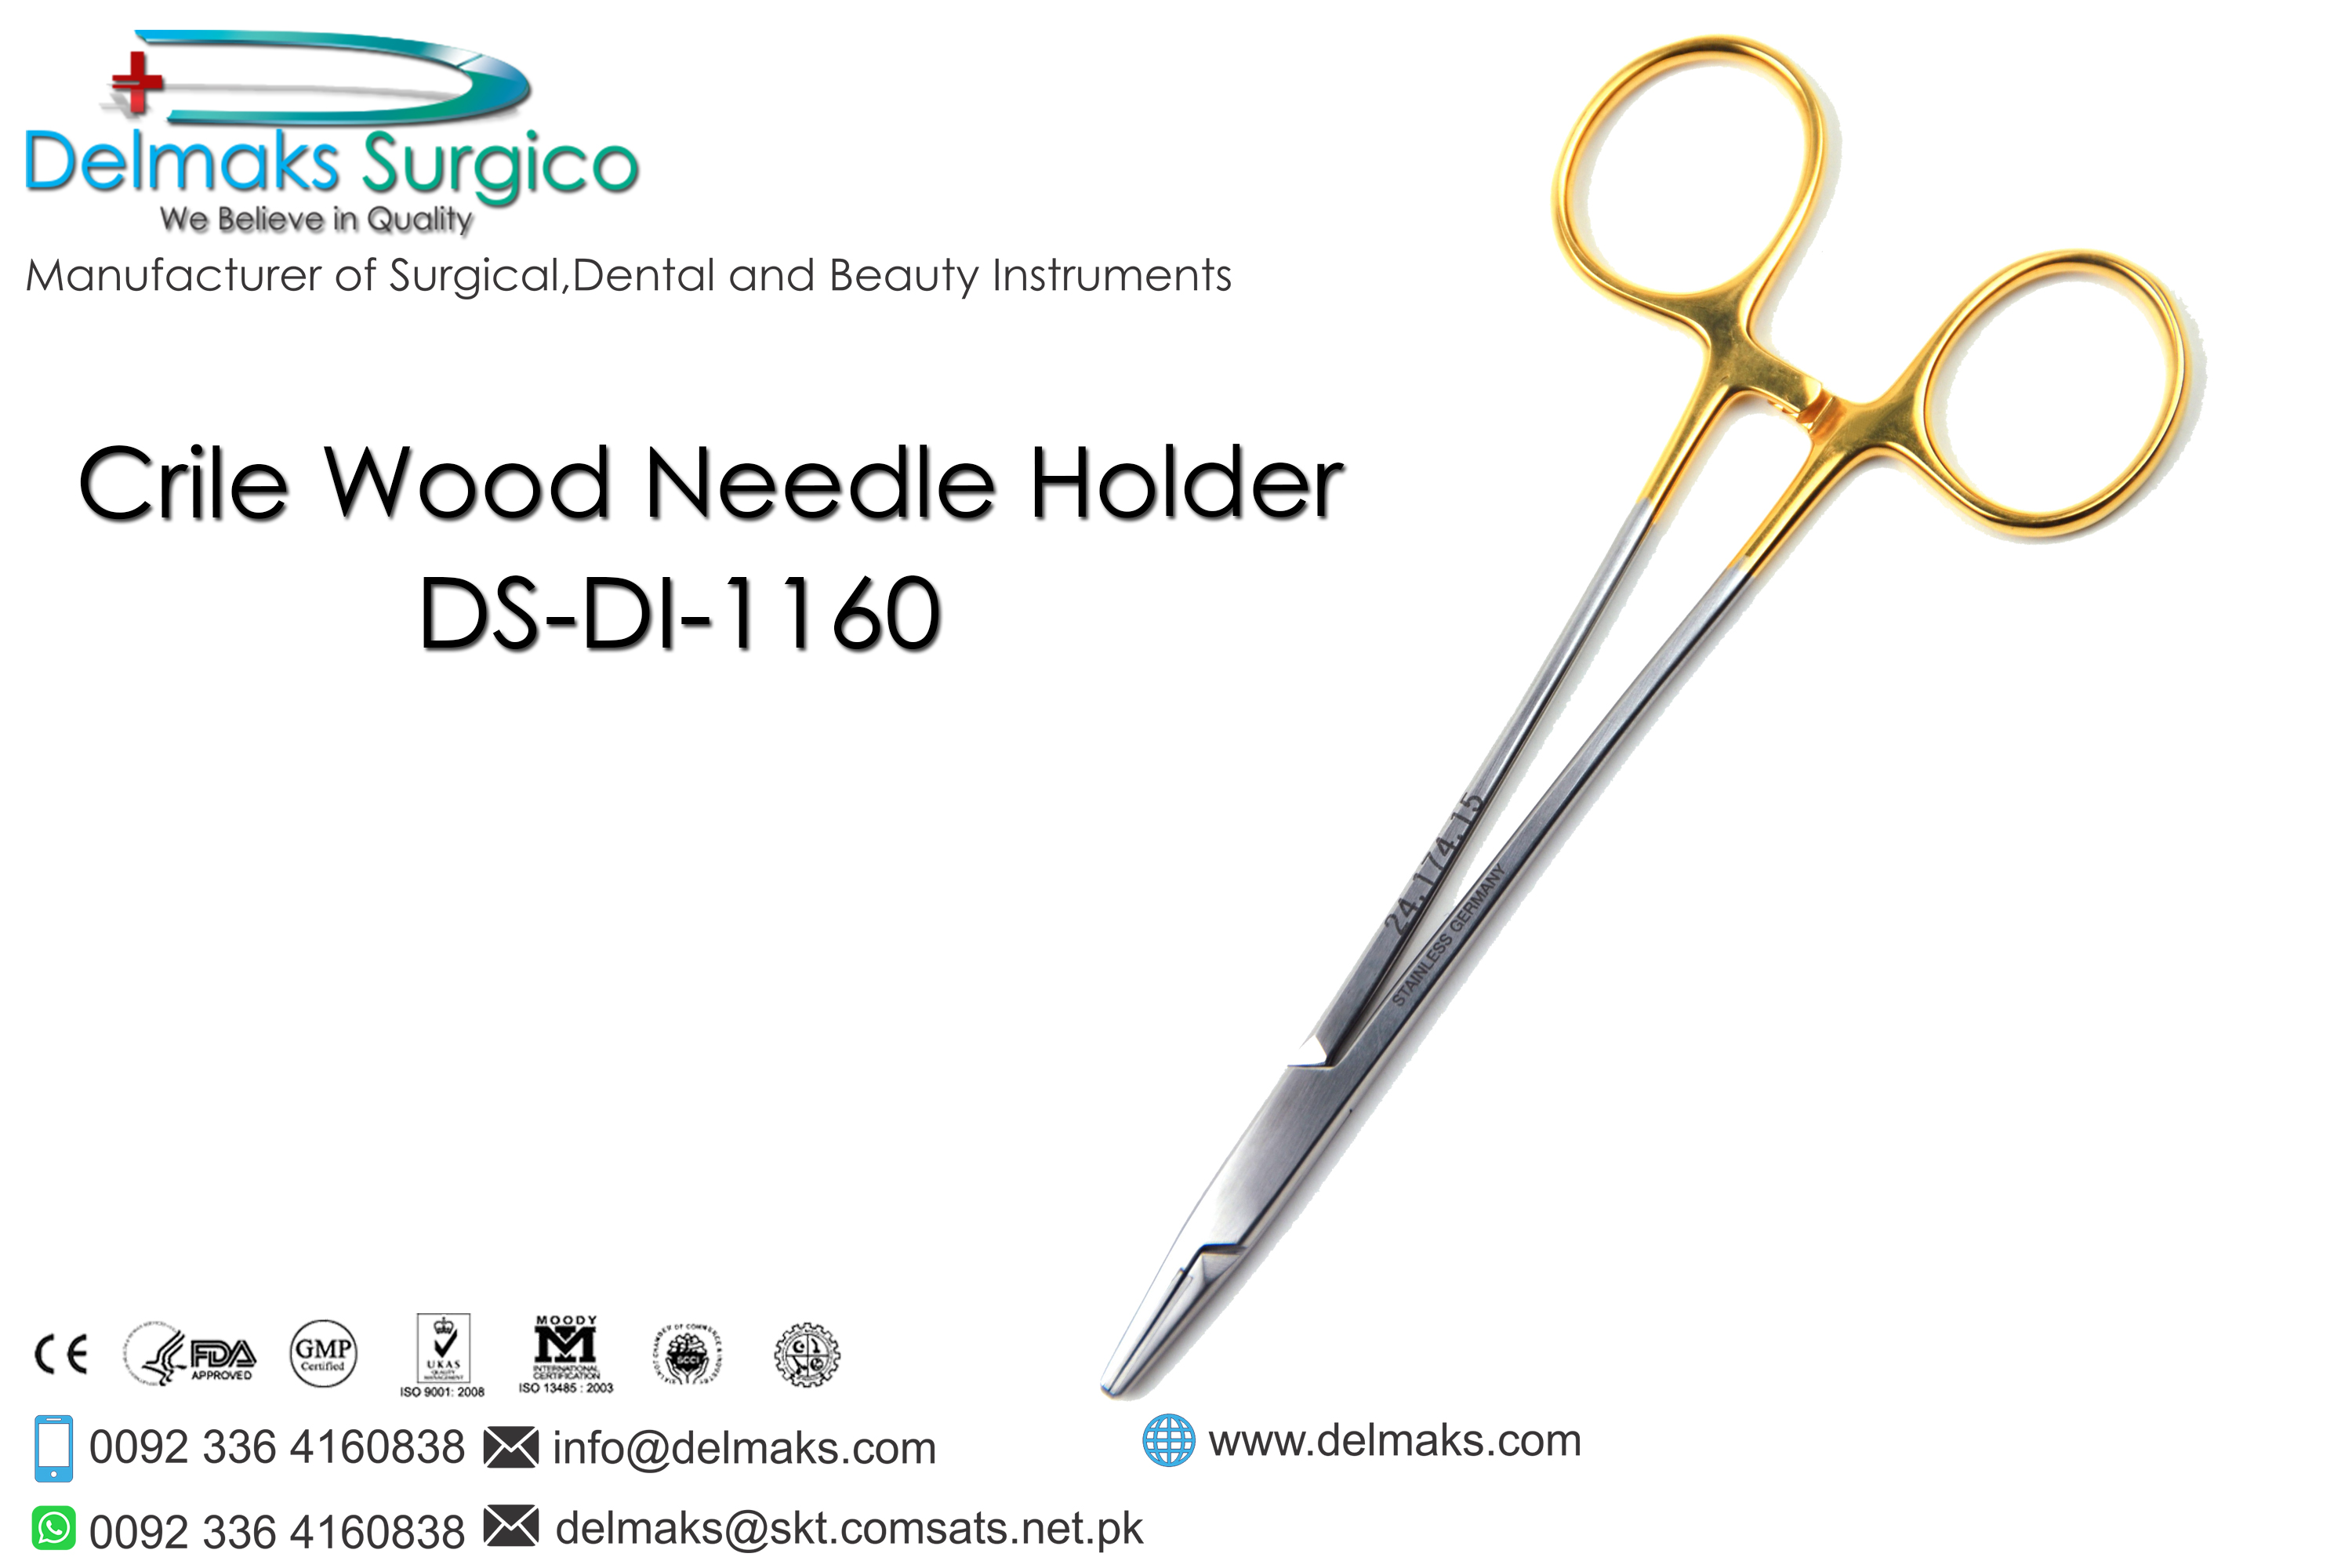 Crile Wood Needle Holder-Needle Holders-Dental Instruments-Delmaks Surgico